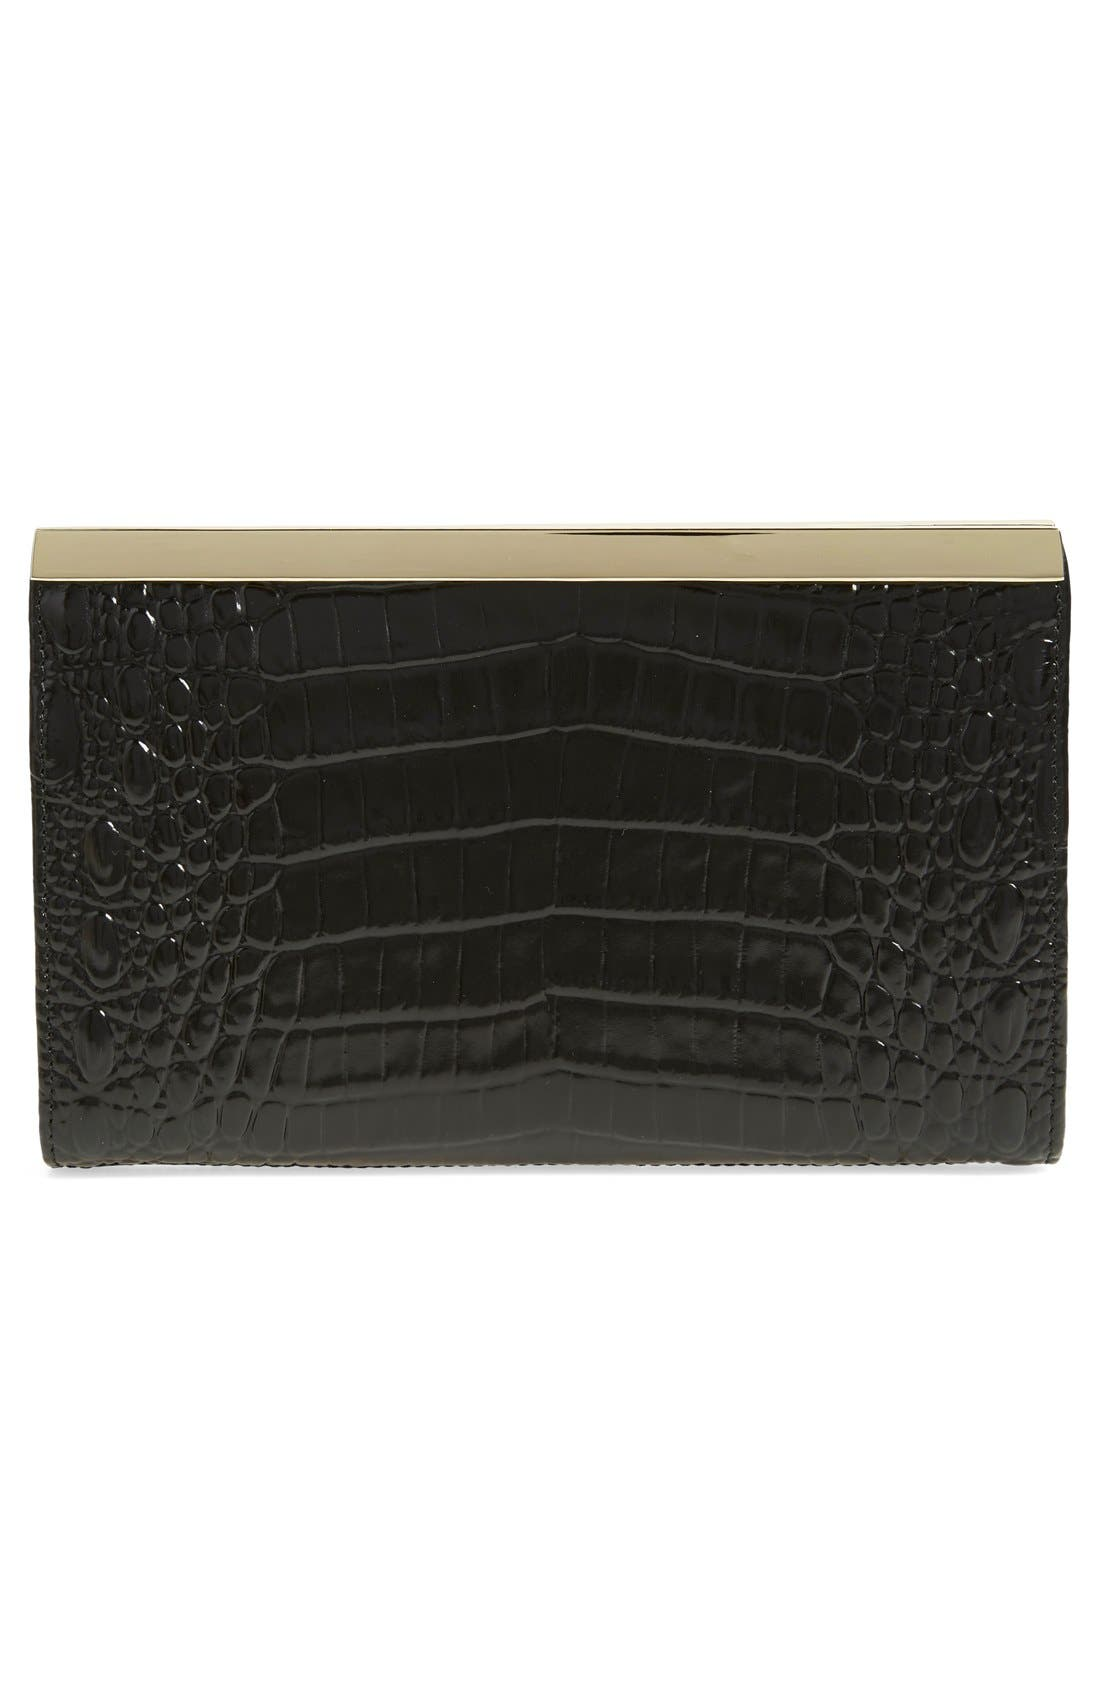 Alternate Image 3  - Brahmin 'Tillie' Croc Embossed Leather Clutch (Nordstrom Exclusive)